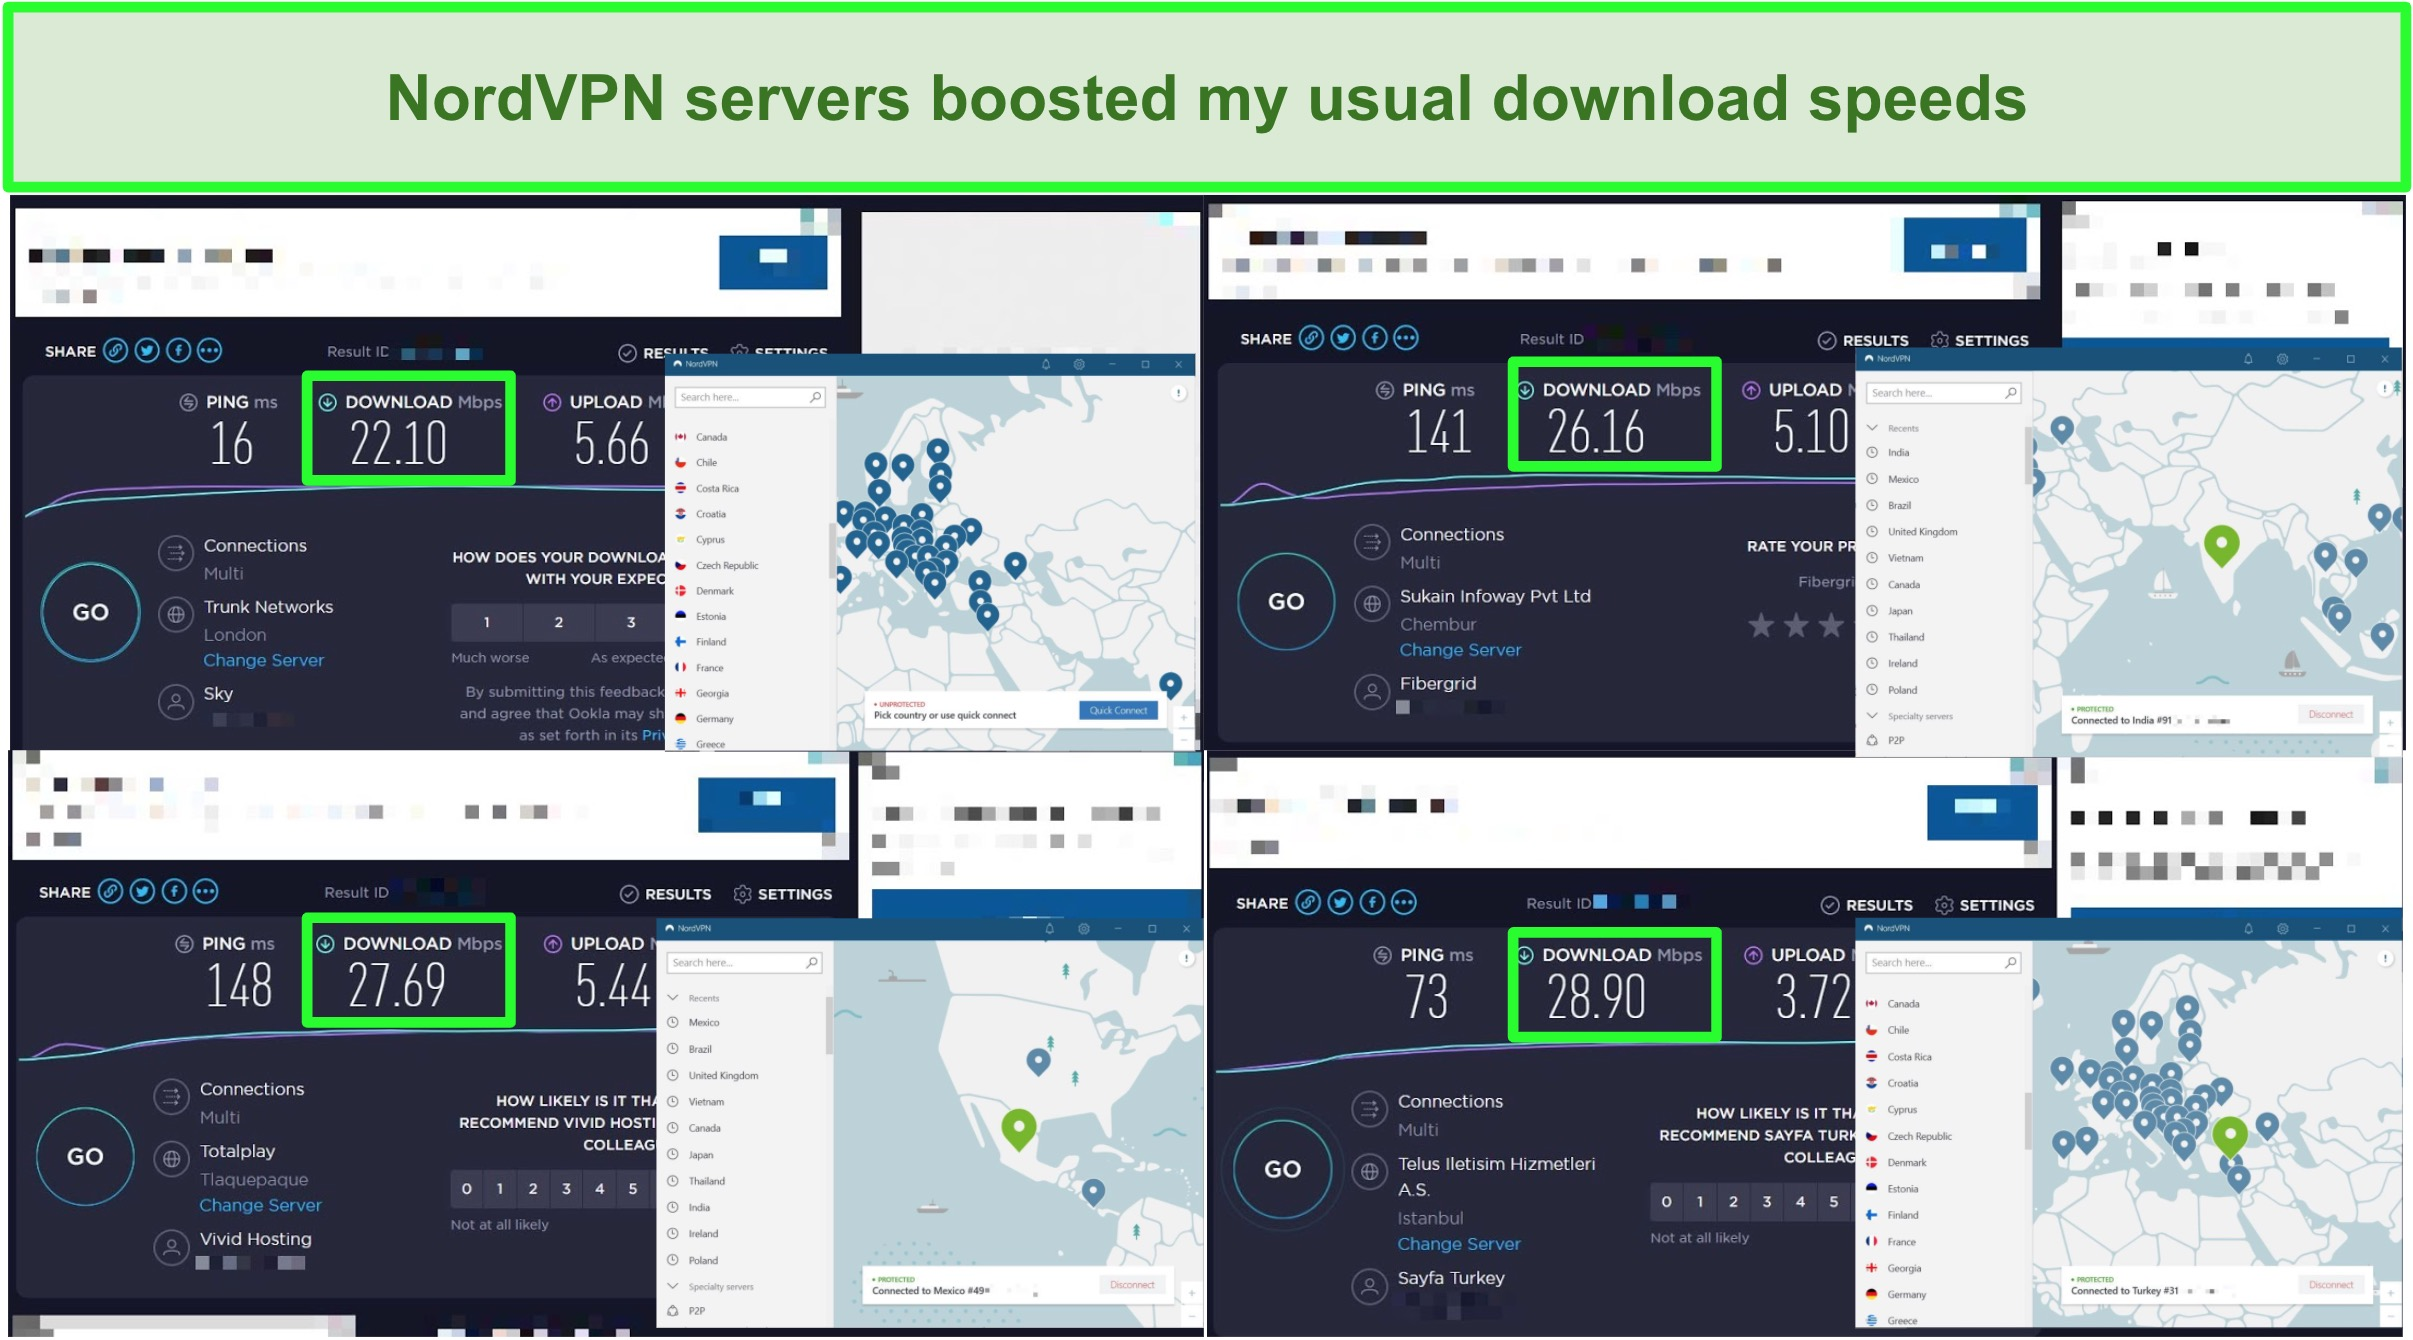 Screenshots of 4 speed tests comparing NordVPN server speed to regular traffic speed